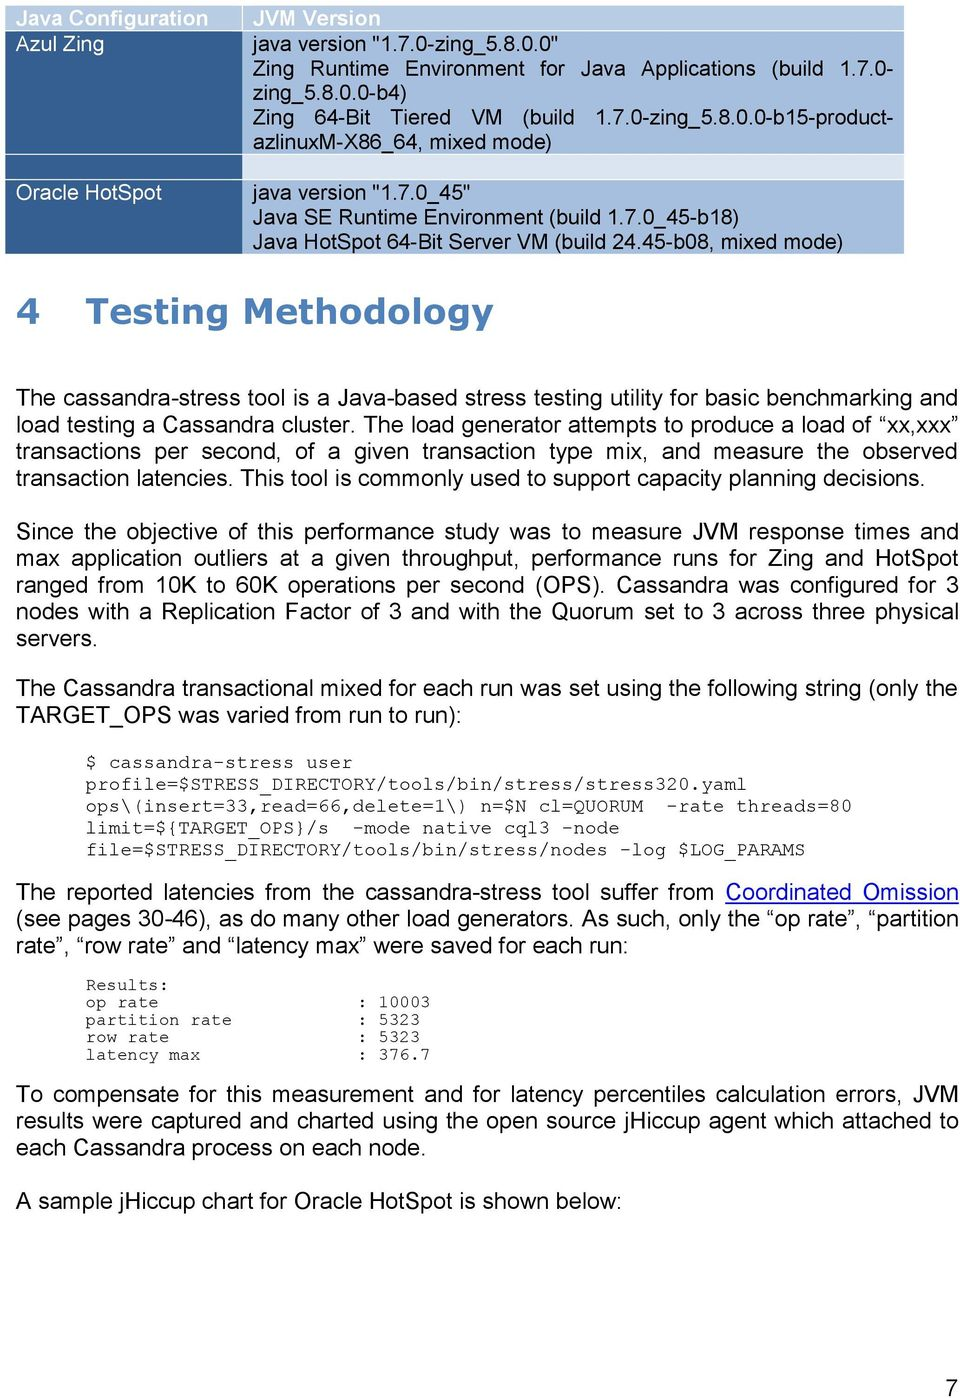 JVM Performance Study Comparing Oracle HotSpot and Azul Zing